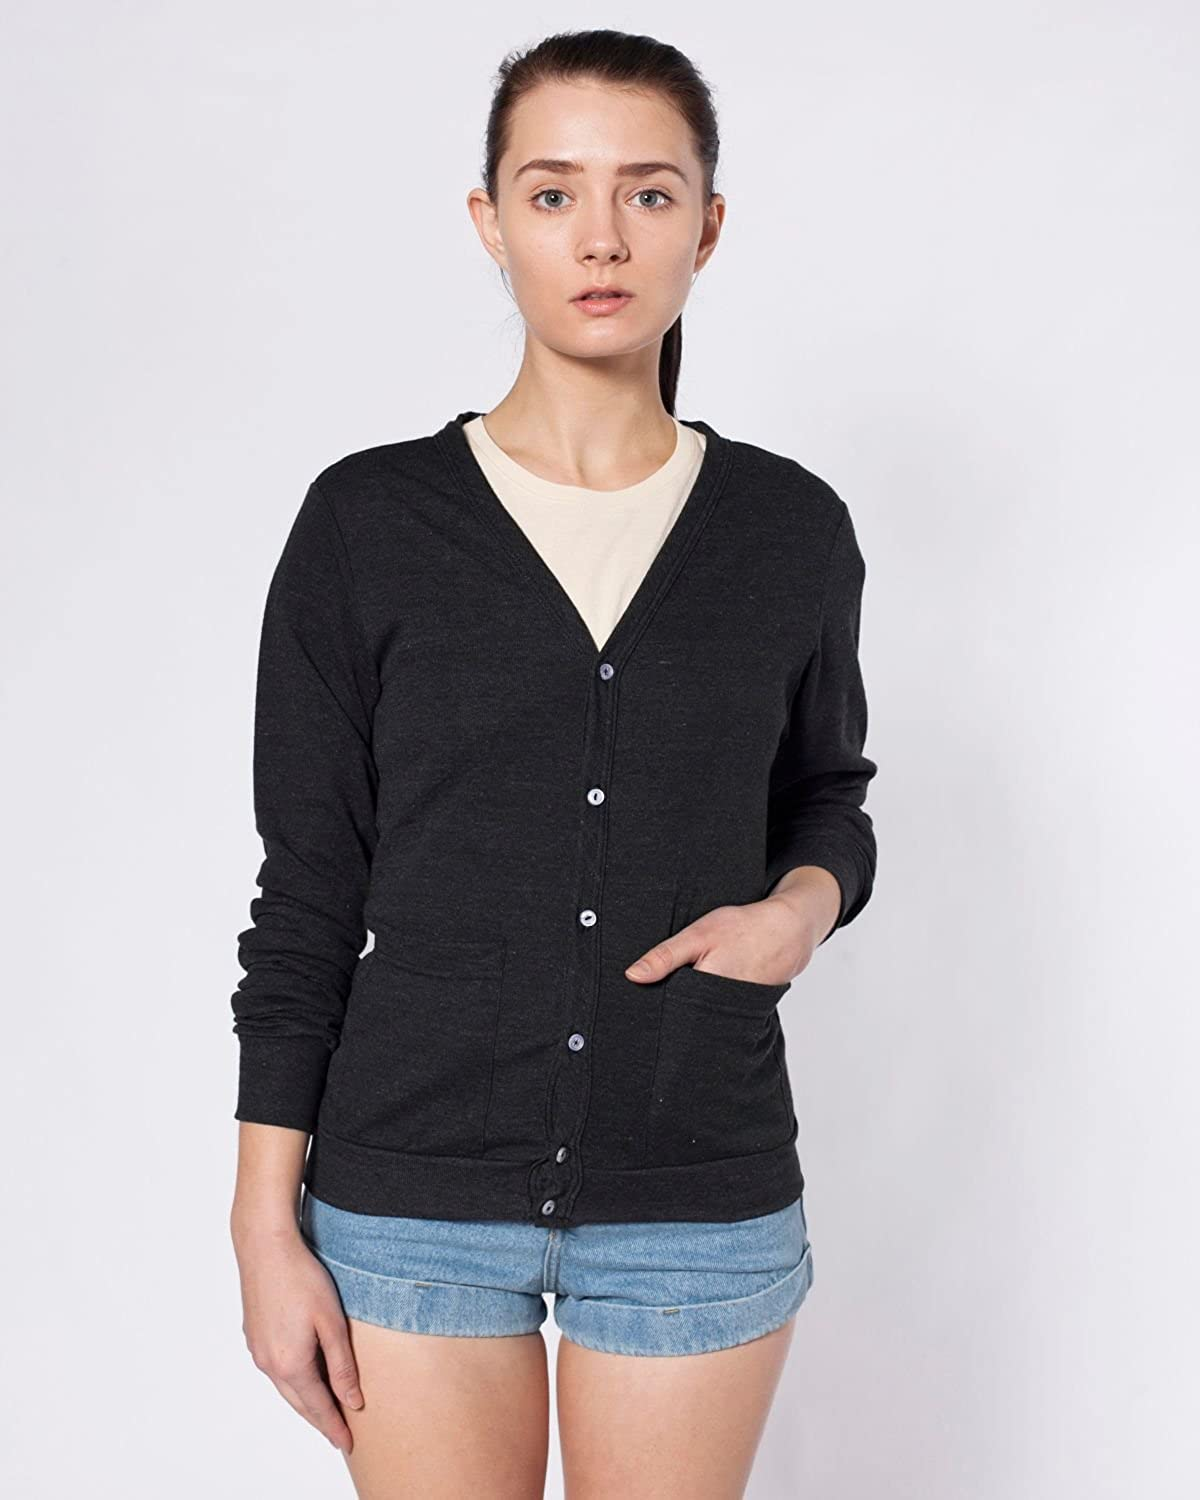 American Apparel Tri-Blend Rib Cardigan - Tri-Black / XS